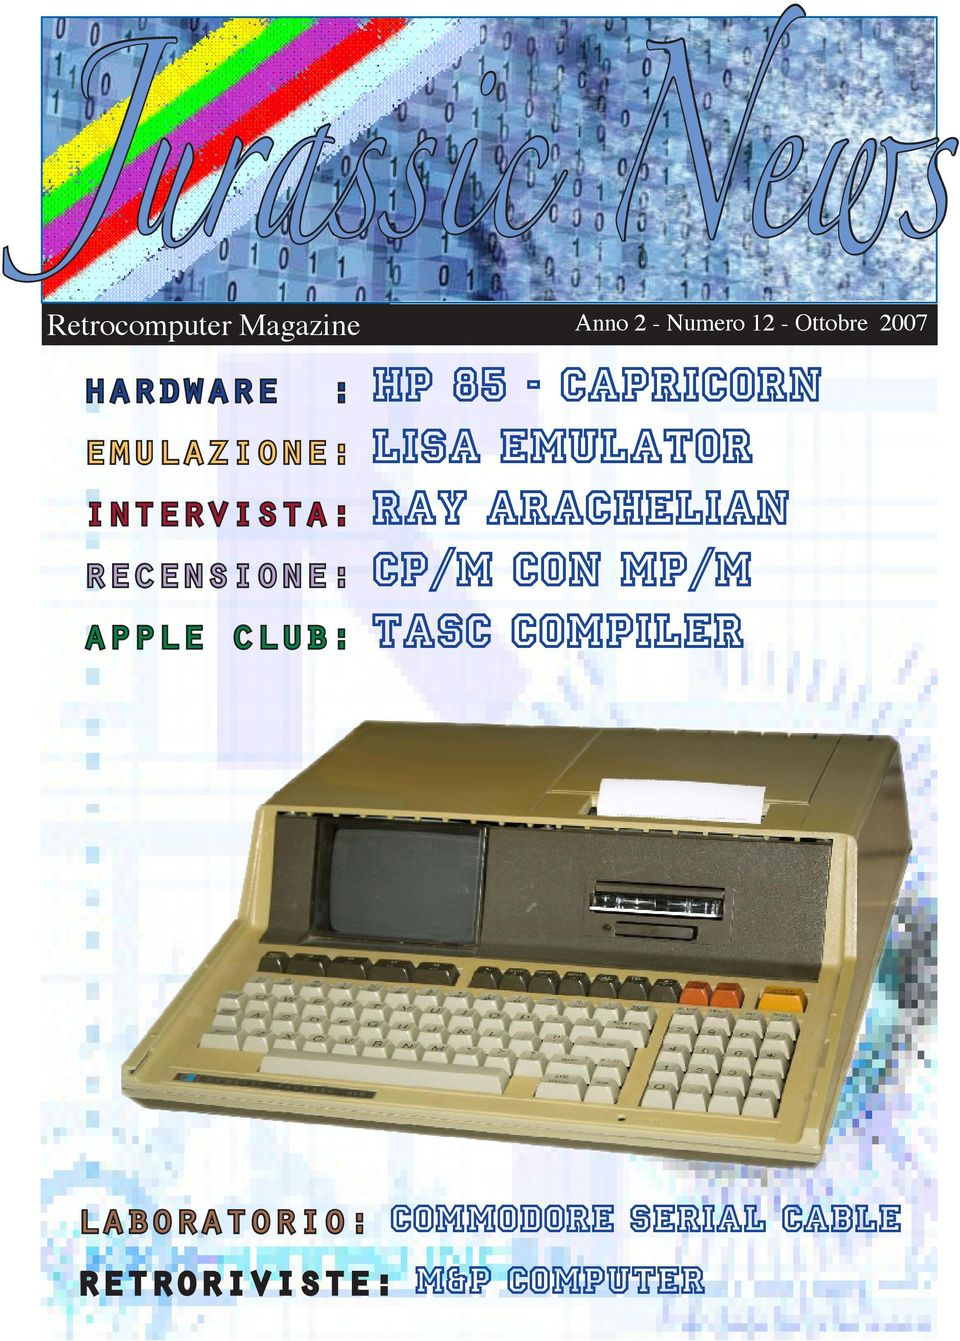 intervista: RAY ARACHELIAN recensione: CP/M con mp/m apple club: